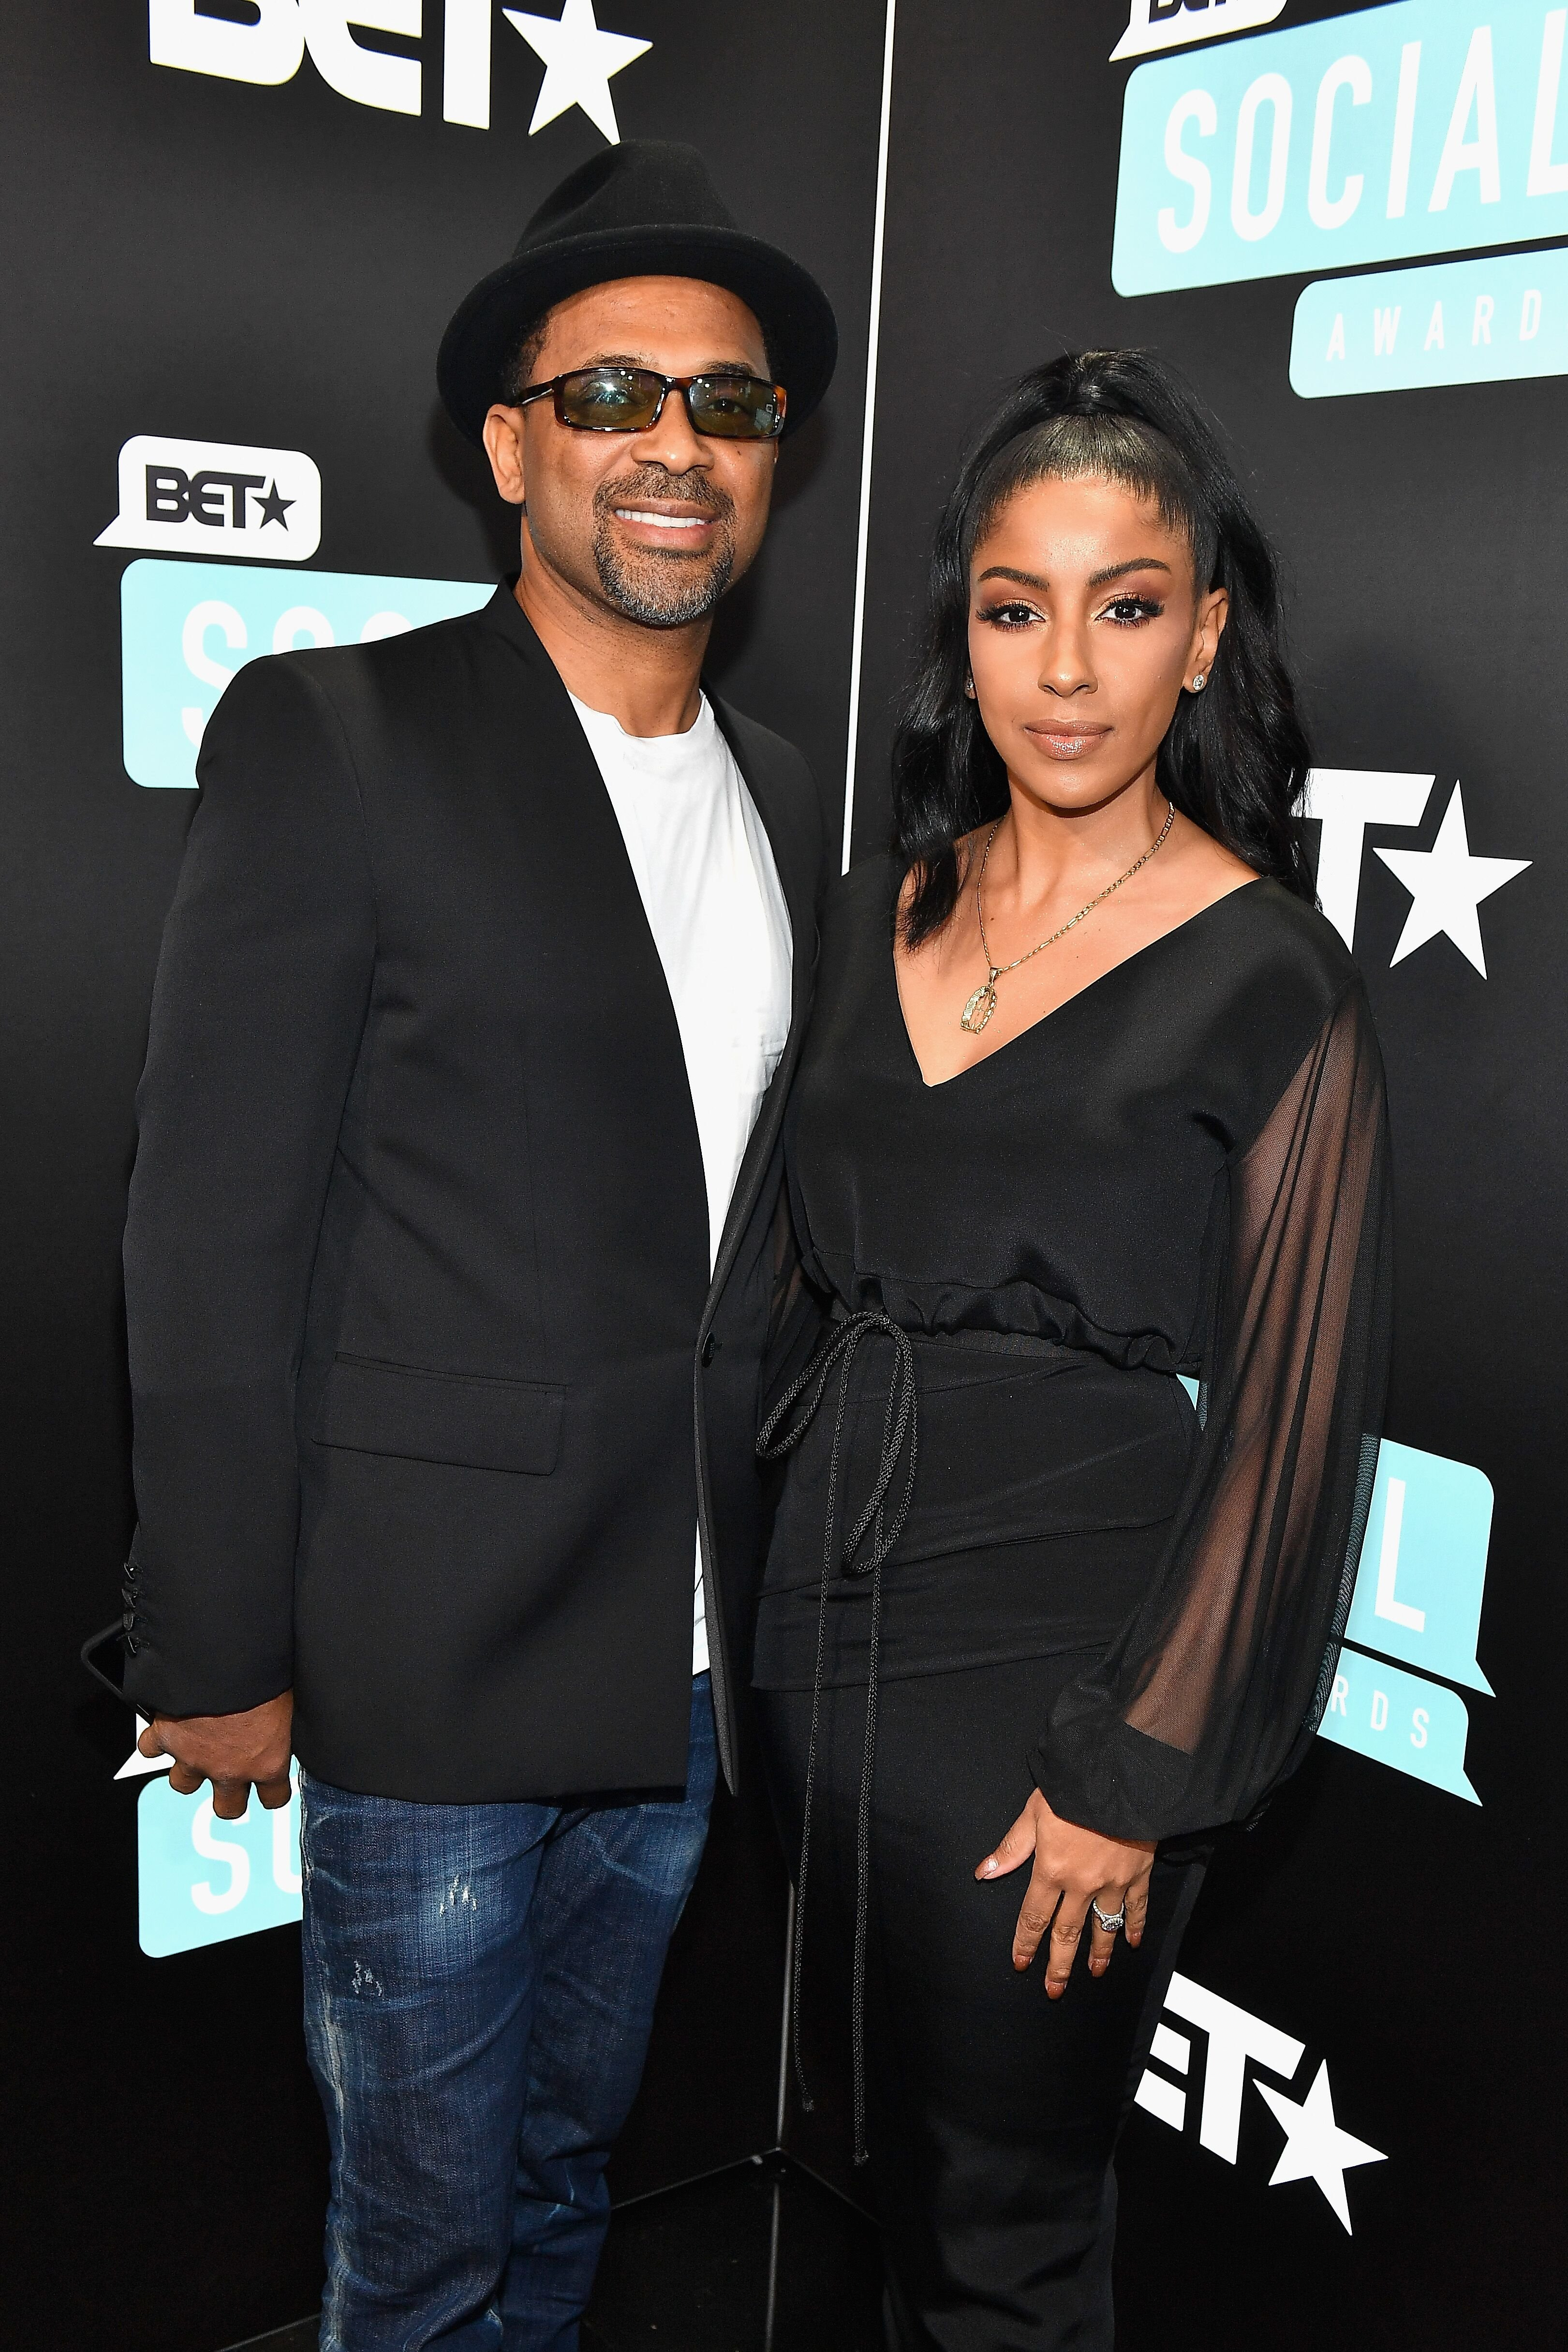 Mike Epps and Kyra Robinson attend the 2019 BET Social Awards at Tyler Perry Studio on March 3, 2019 in Atlanta, Georgia.   Source: Getty Images